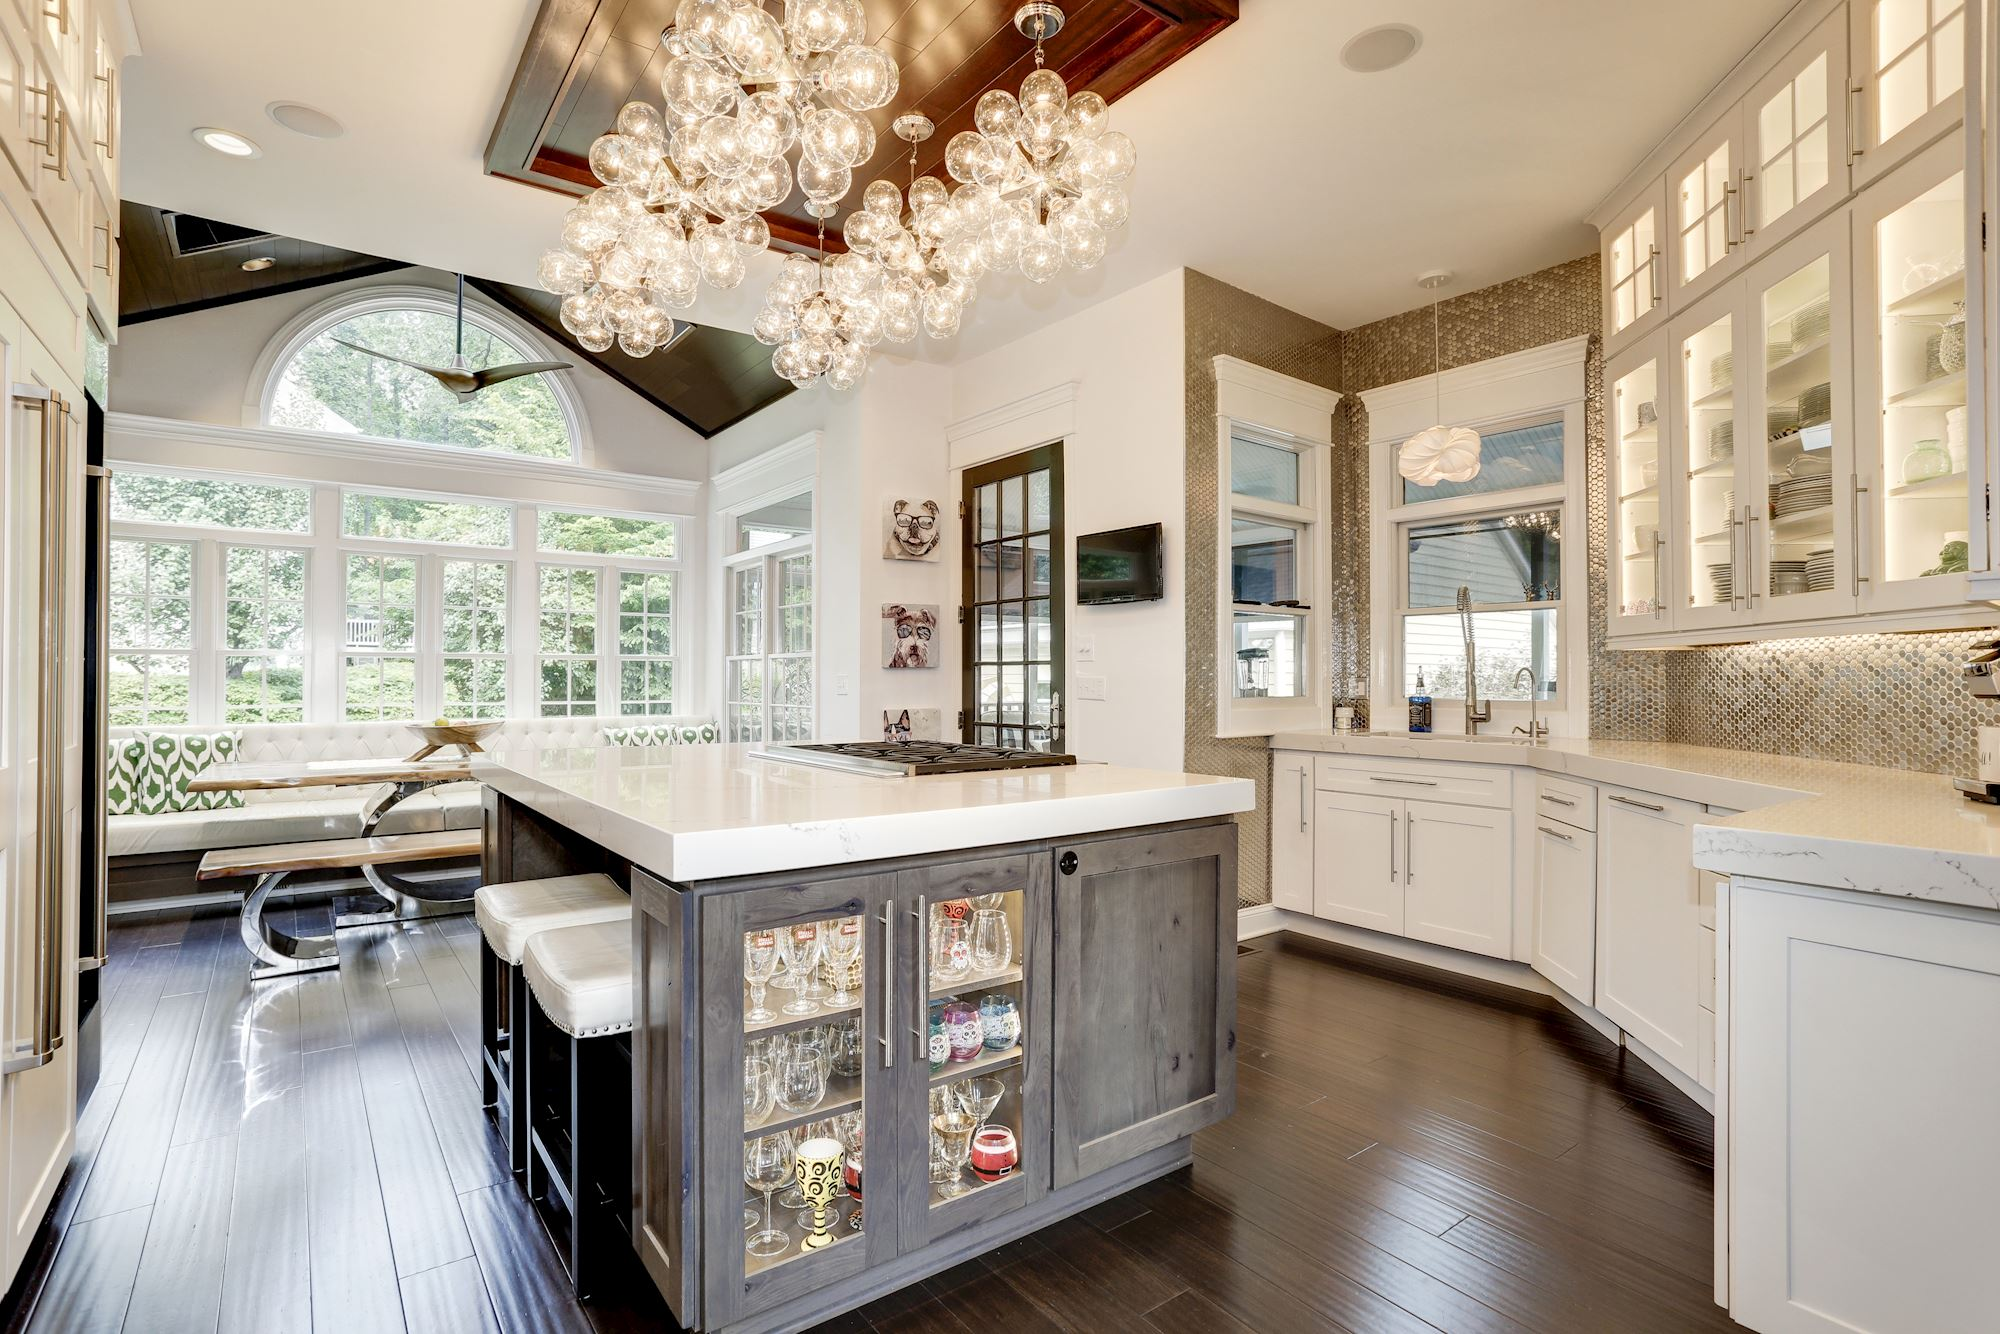 C. Clary Contracting Services - Kitchens